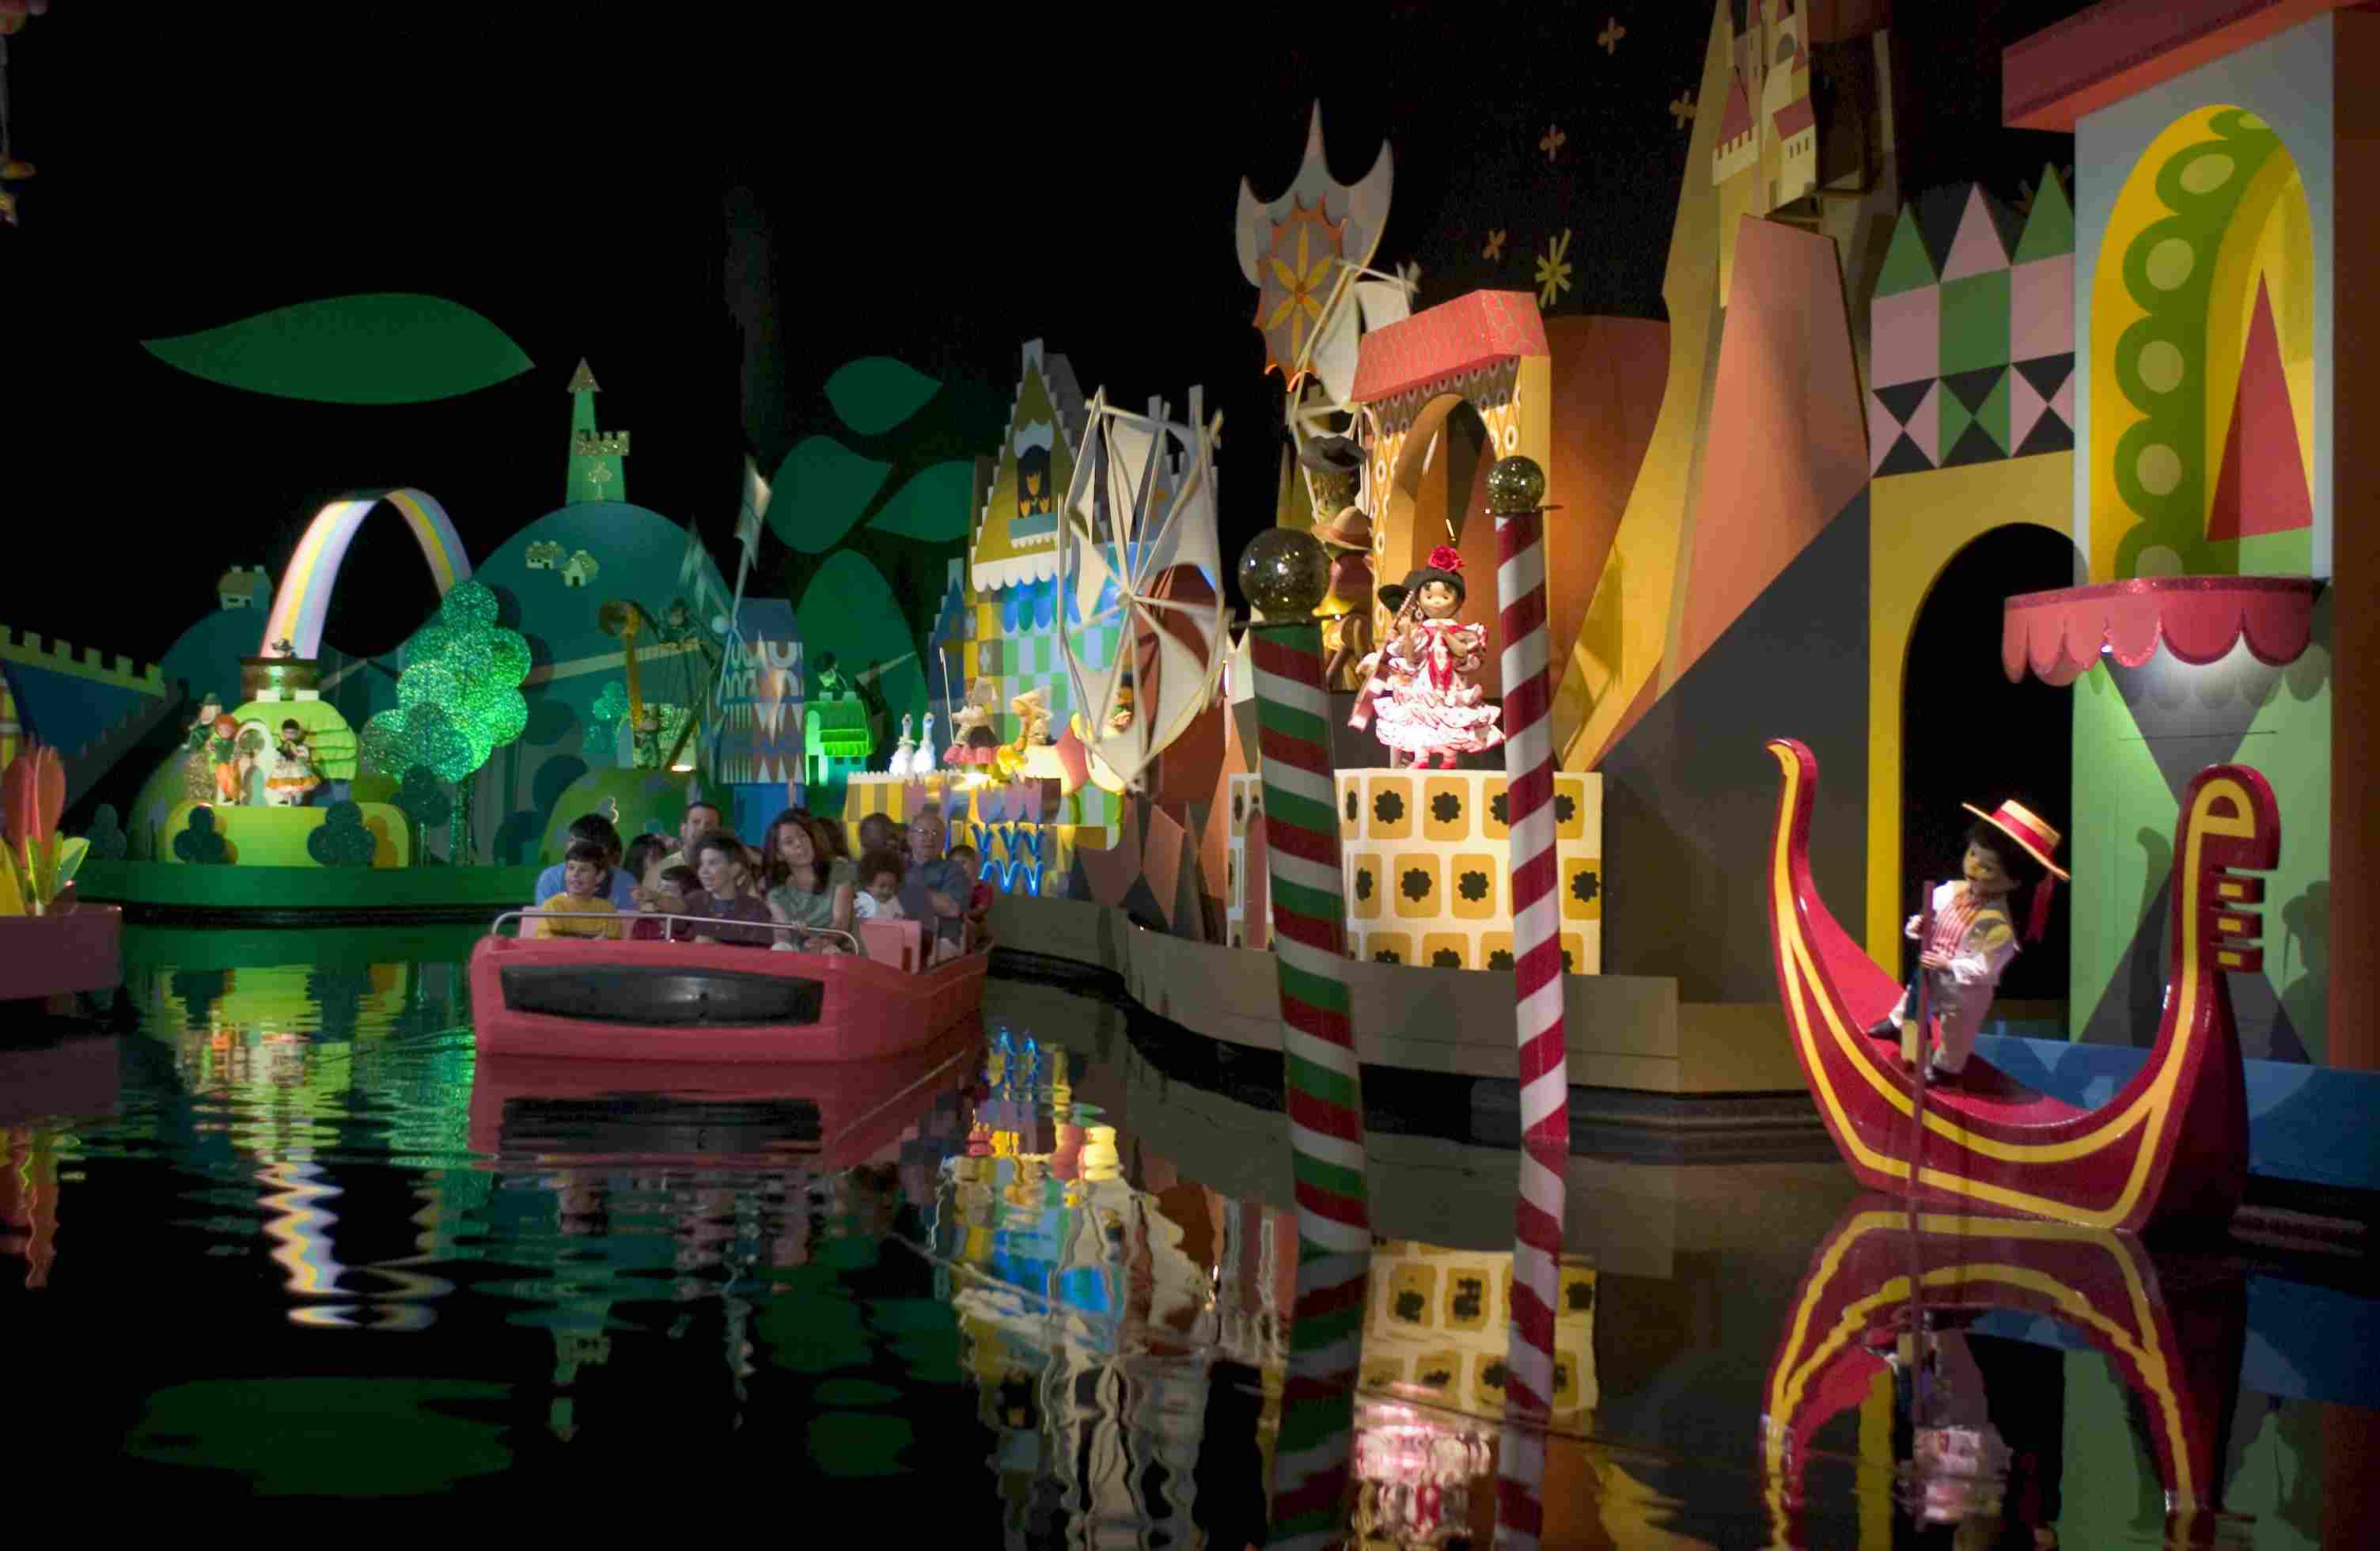 The It's a Small World Ride at Disney World